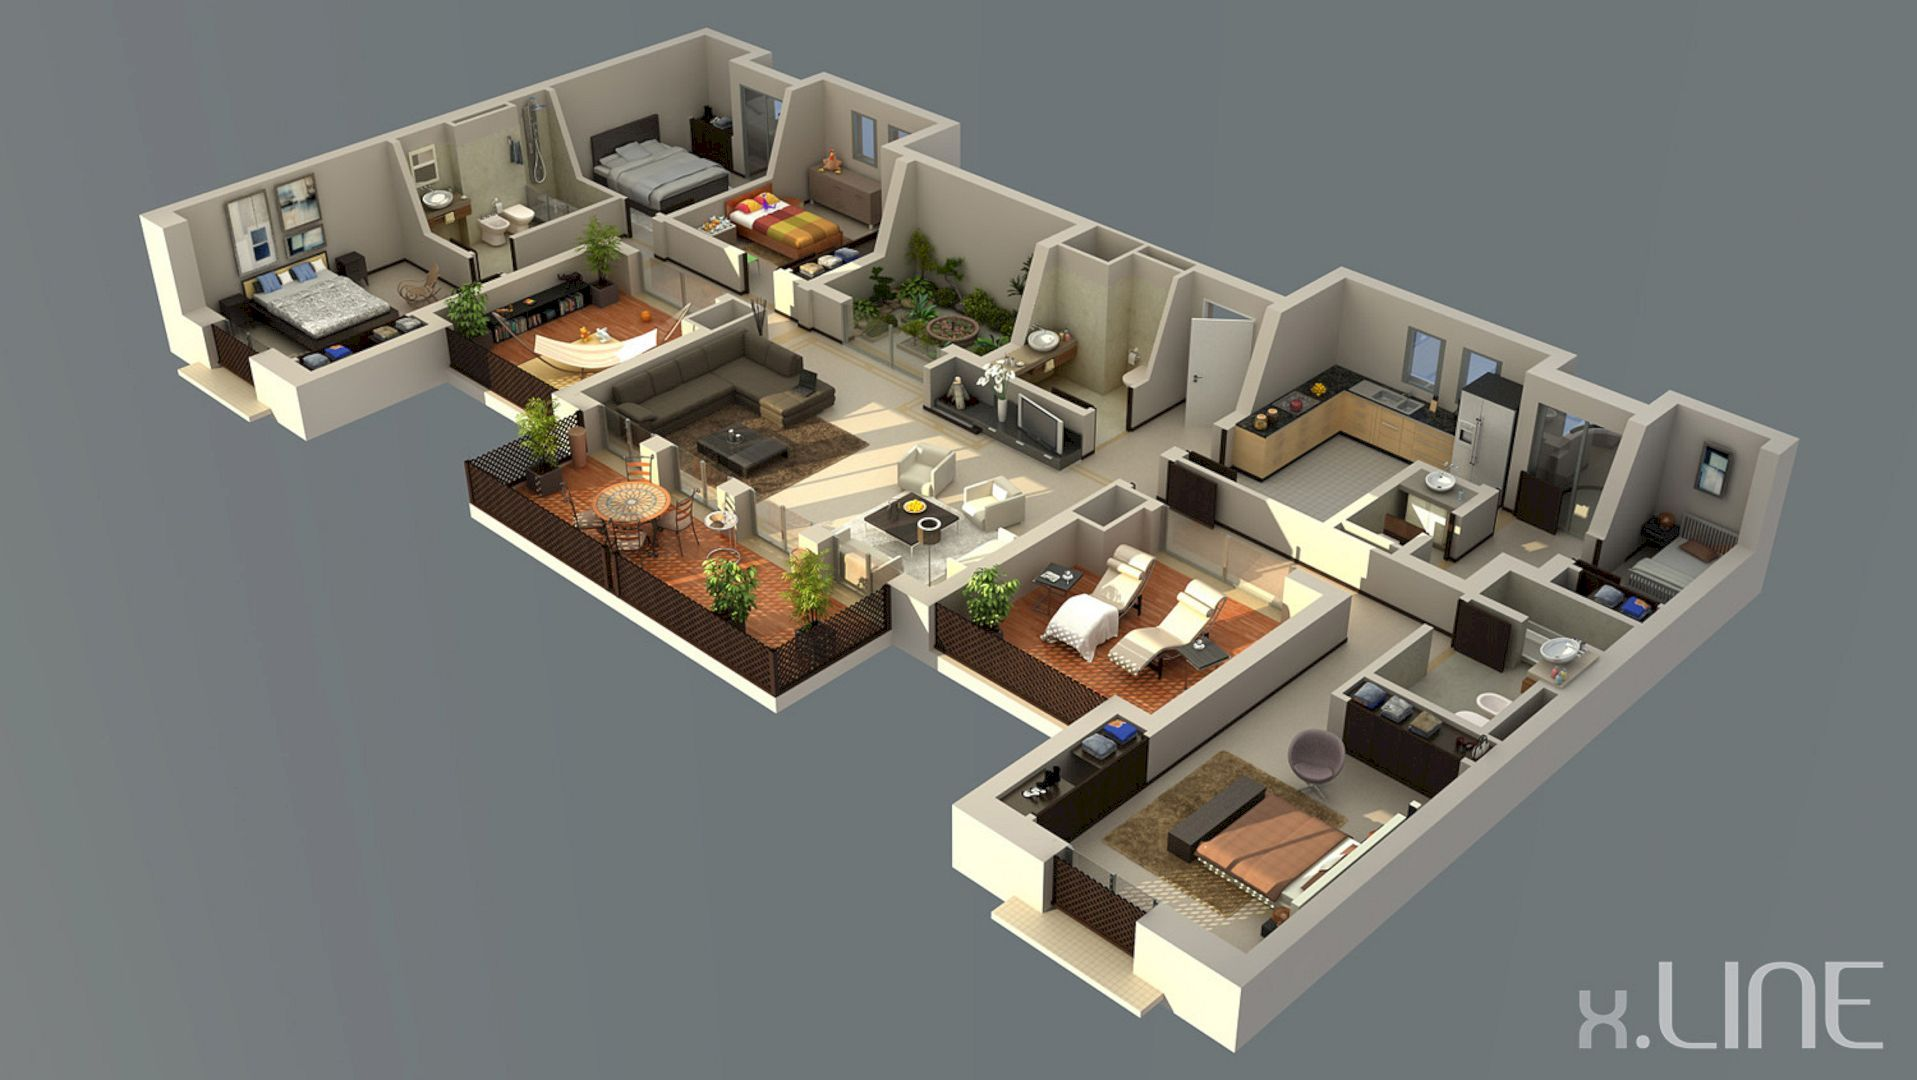 Do It Yourself Home Design: Why Do We Need 3D House Plan Before Starting The Project